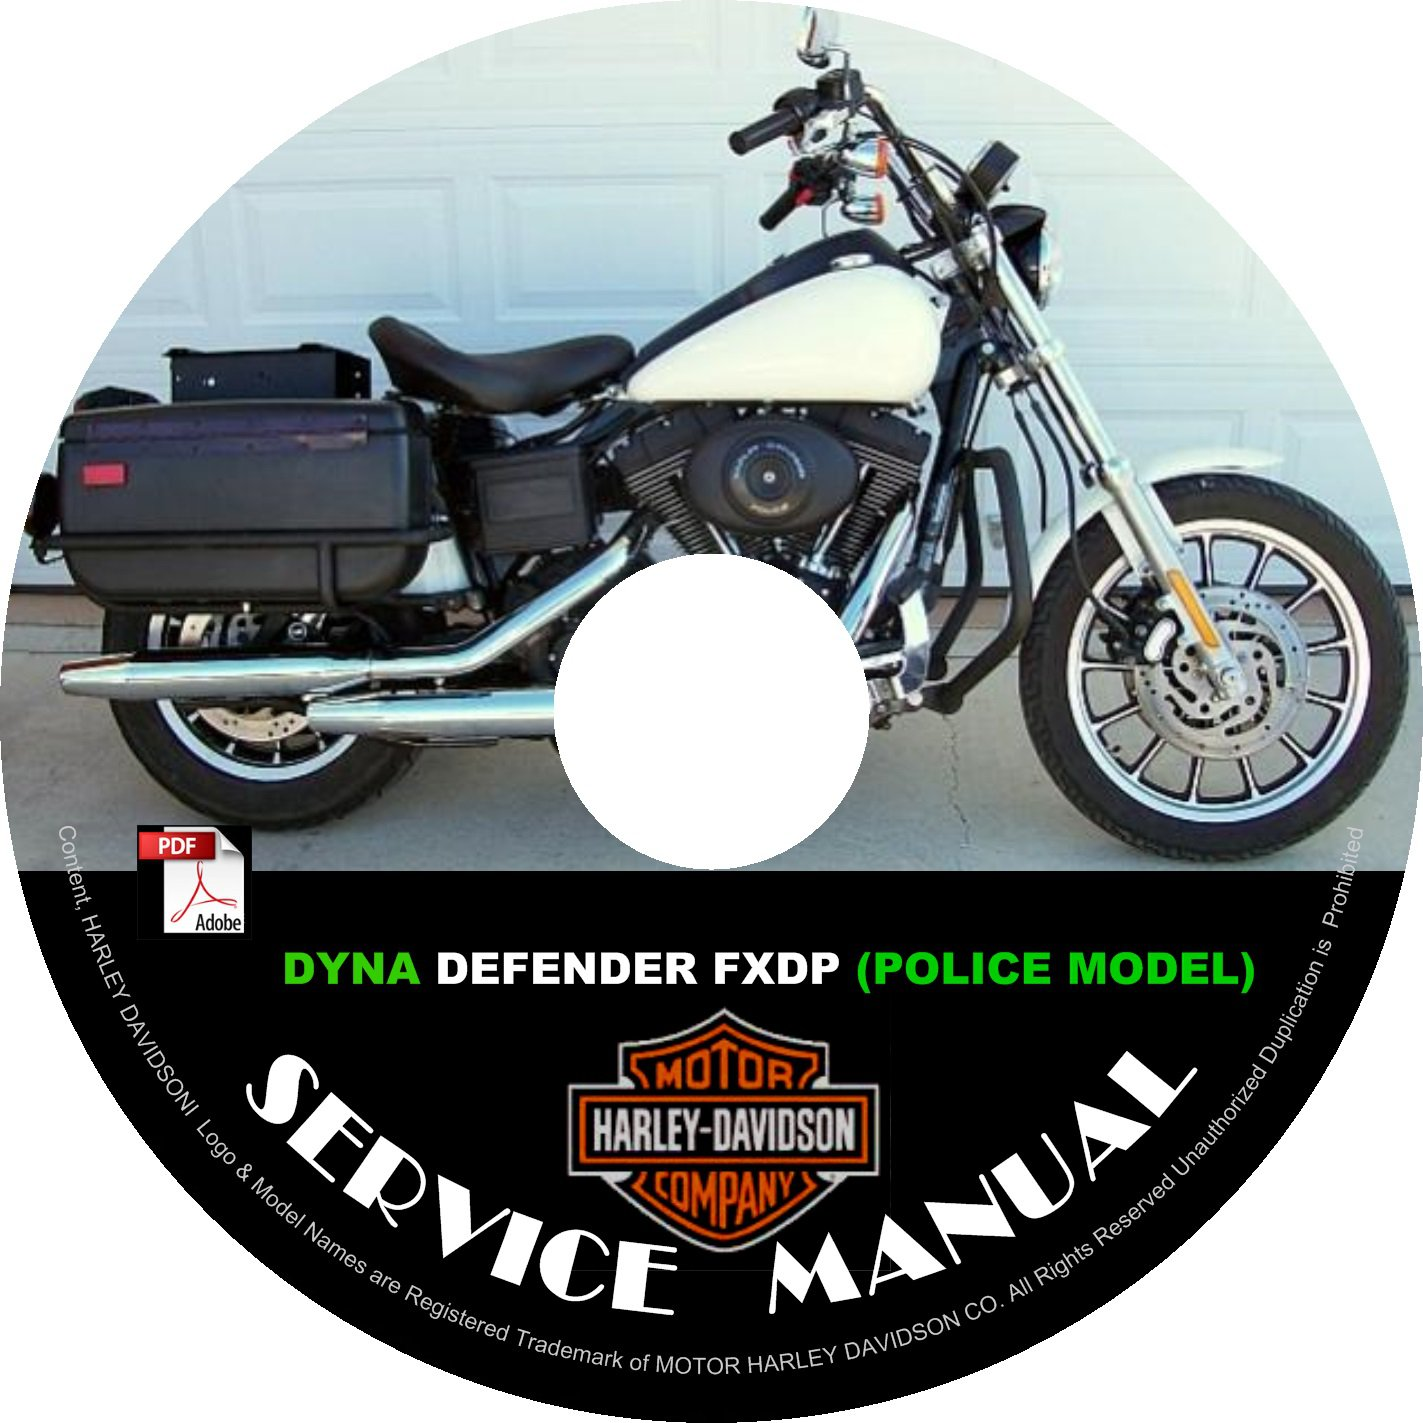 2000 Harley Davidson DYNA DEFENDER FXDP POLICE Service Repair Shop Manual on CD Fix Rebuild Workshop